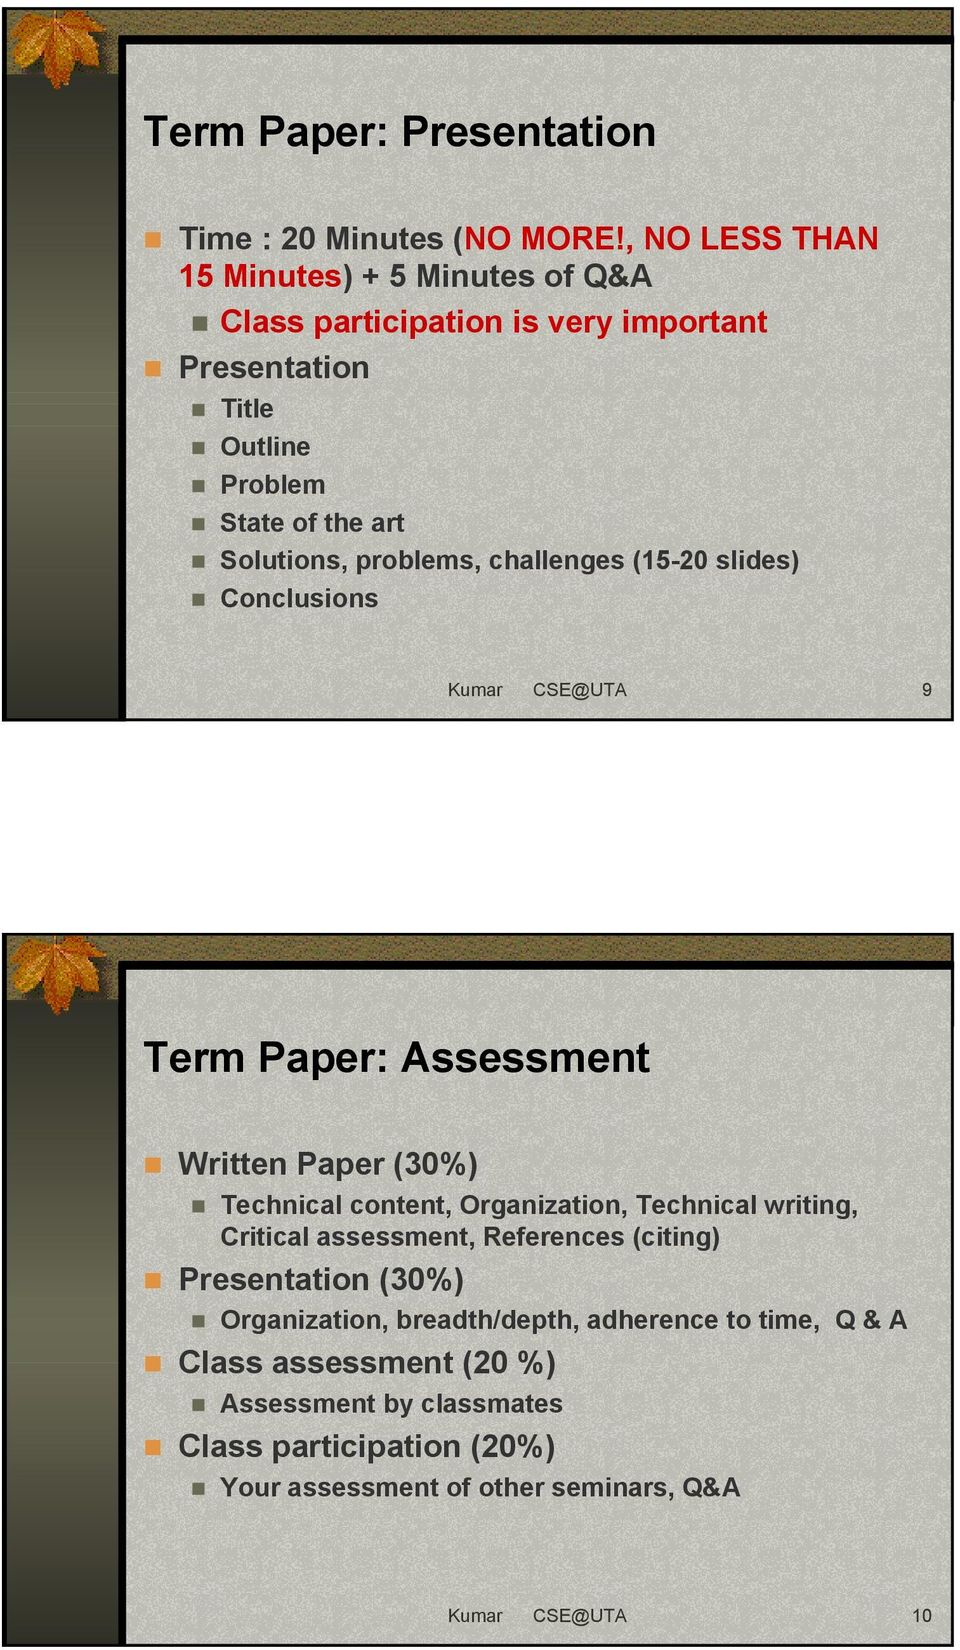 problems, challenges (15-20 slides) Conclusions Kumar CSE@UTA 9 Term Paper: Assessment Written Paper (30%) Technical content, Organization, Technical